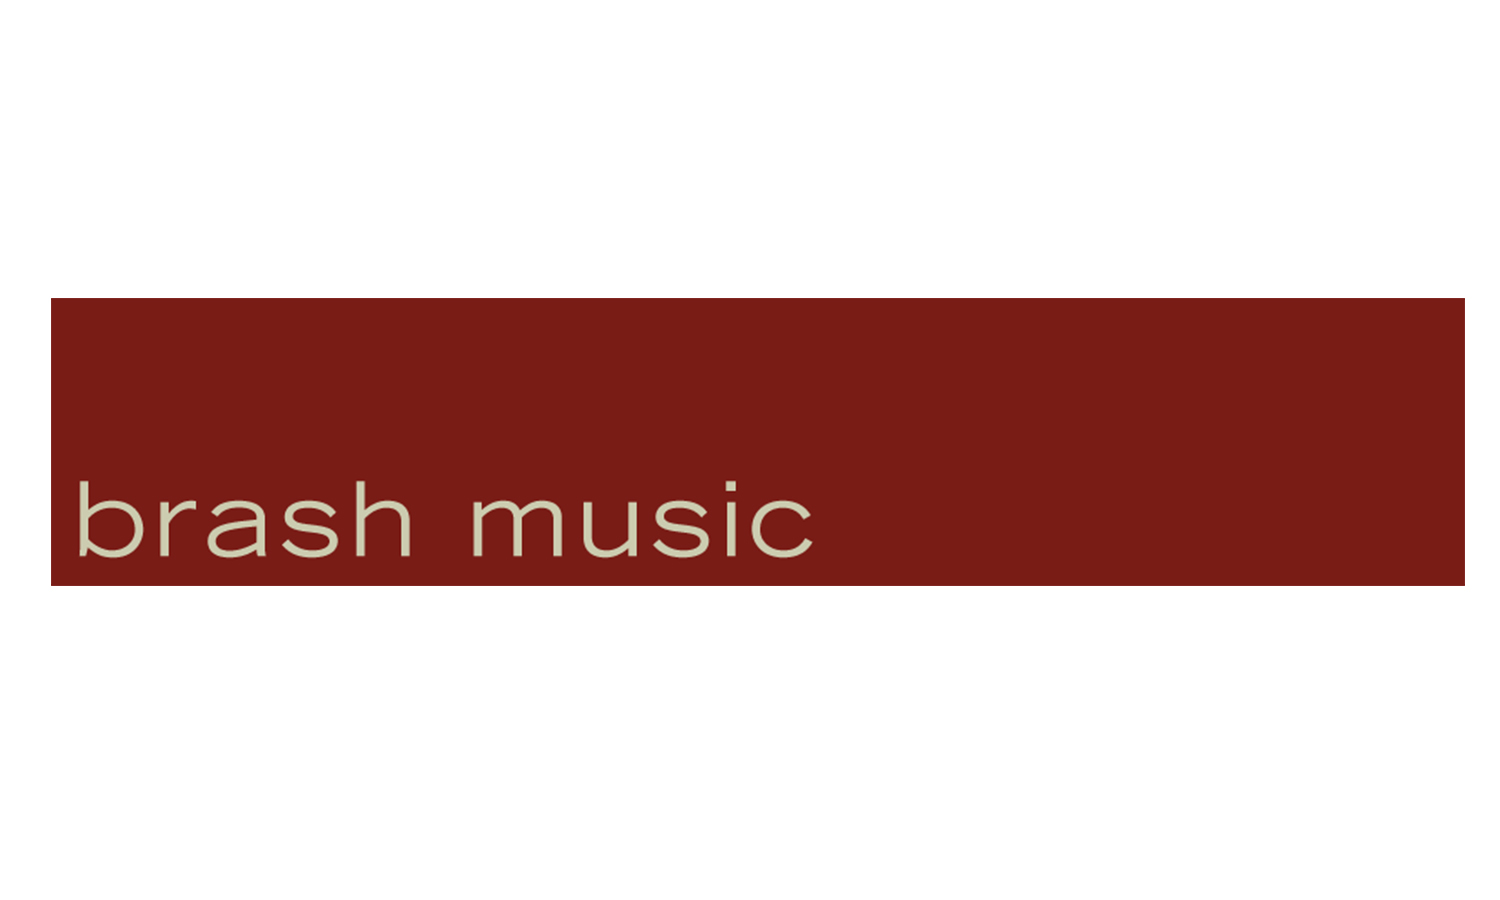 Brash Music is an independent record label with distribution through ADA (Warner Music Group). Artists on Brash Music have included Jump Little Children, Aaron Shust, The Damnwells, and Anthony David.    www.brashmusic.com